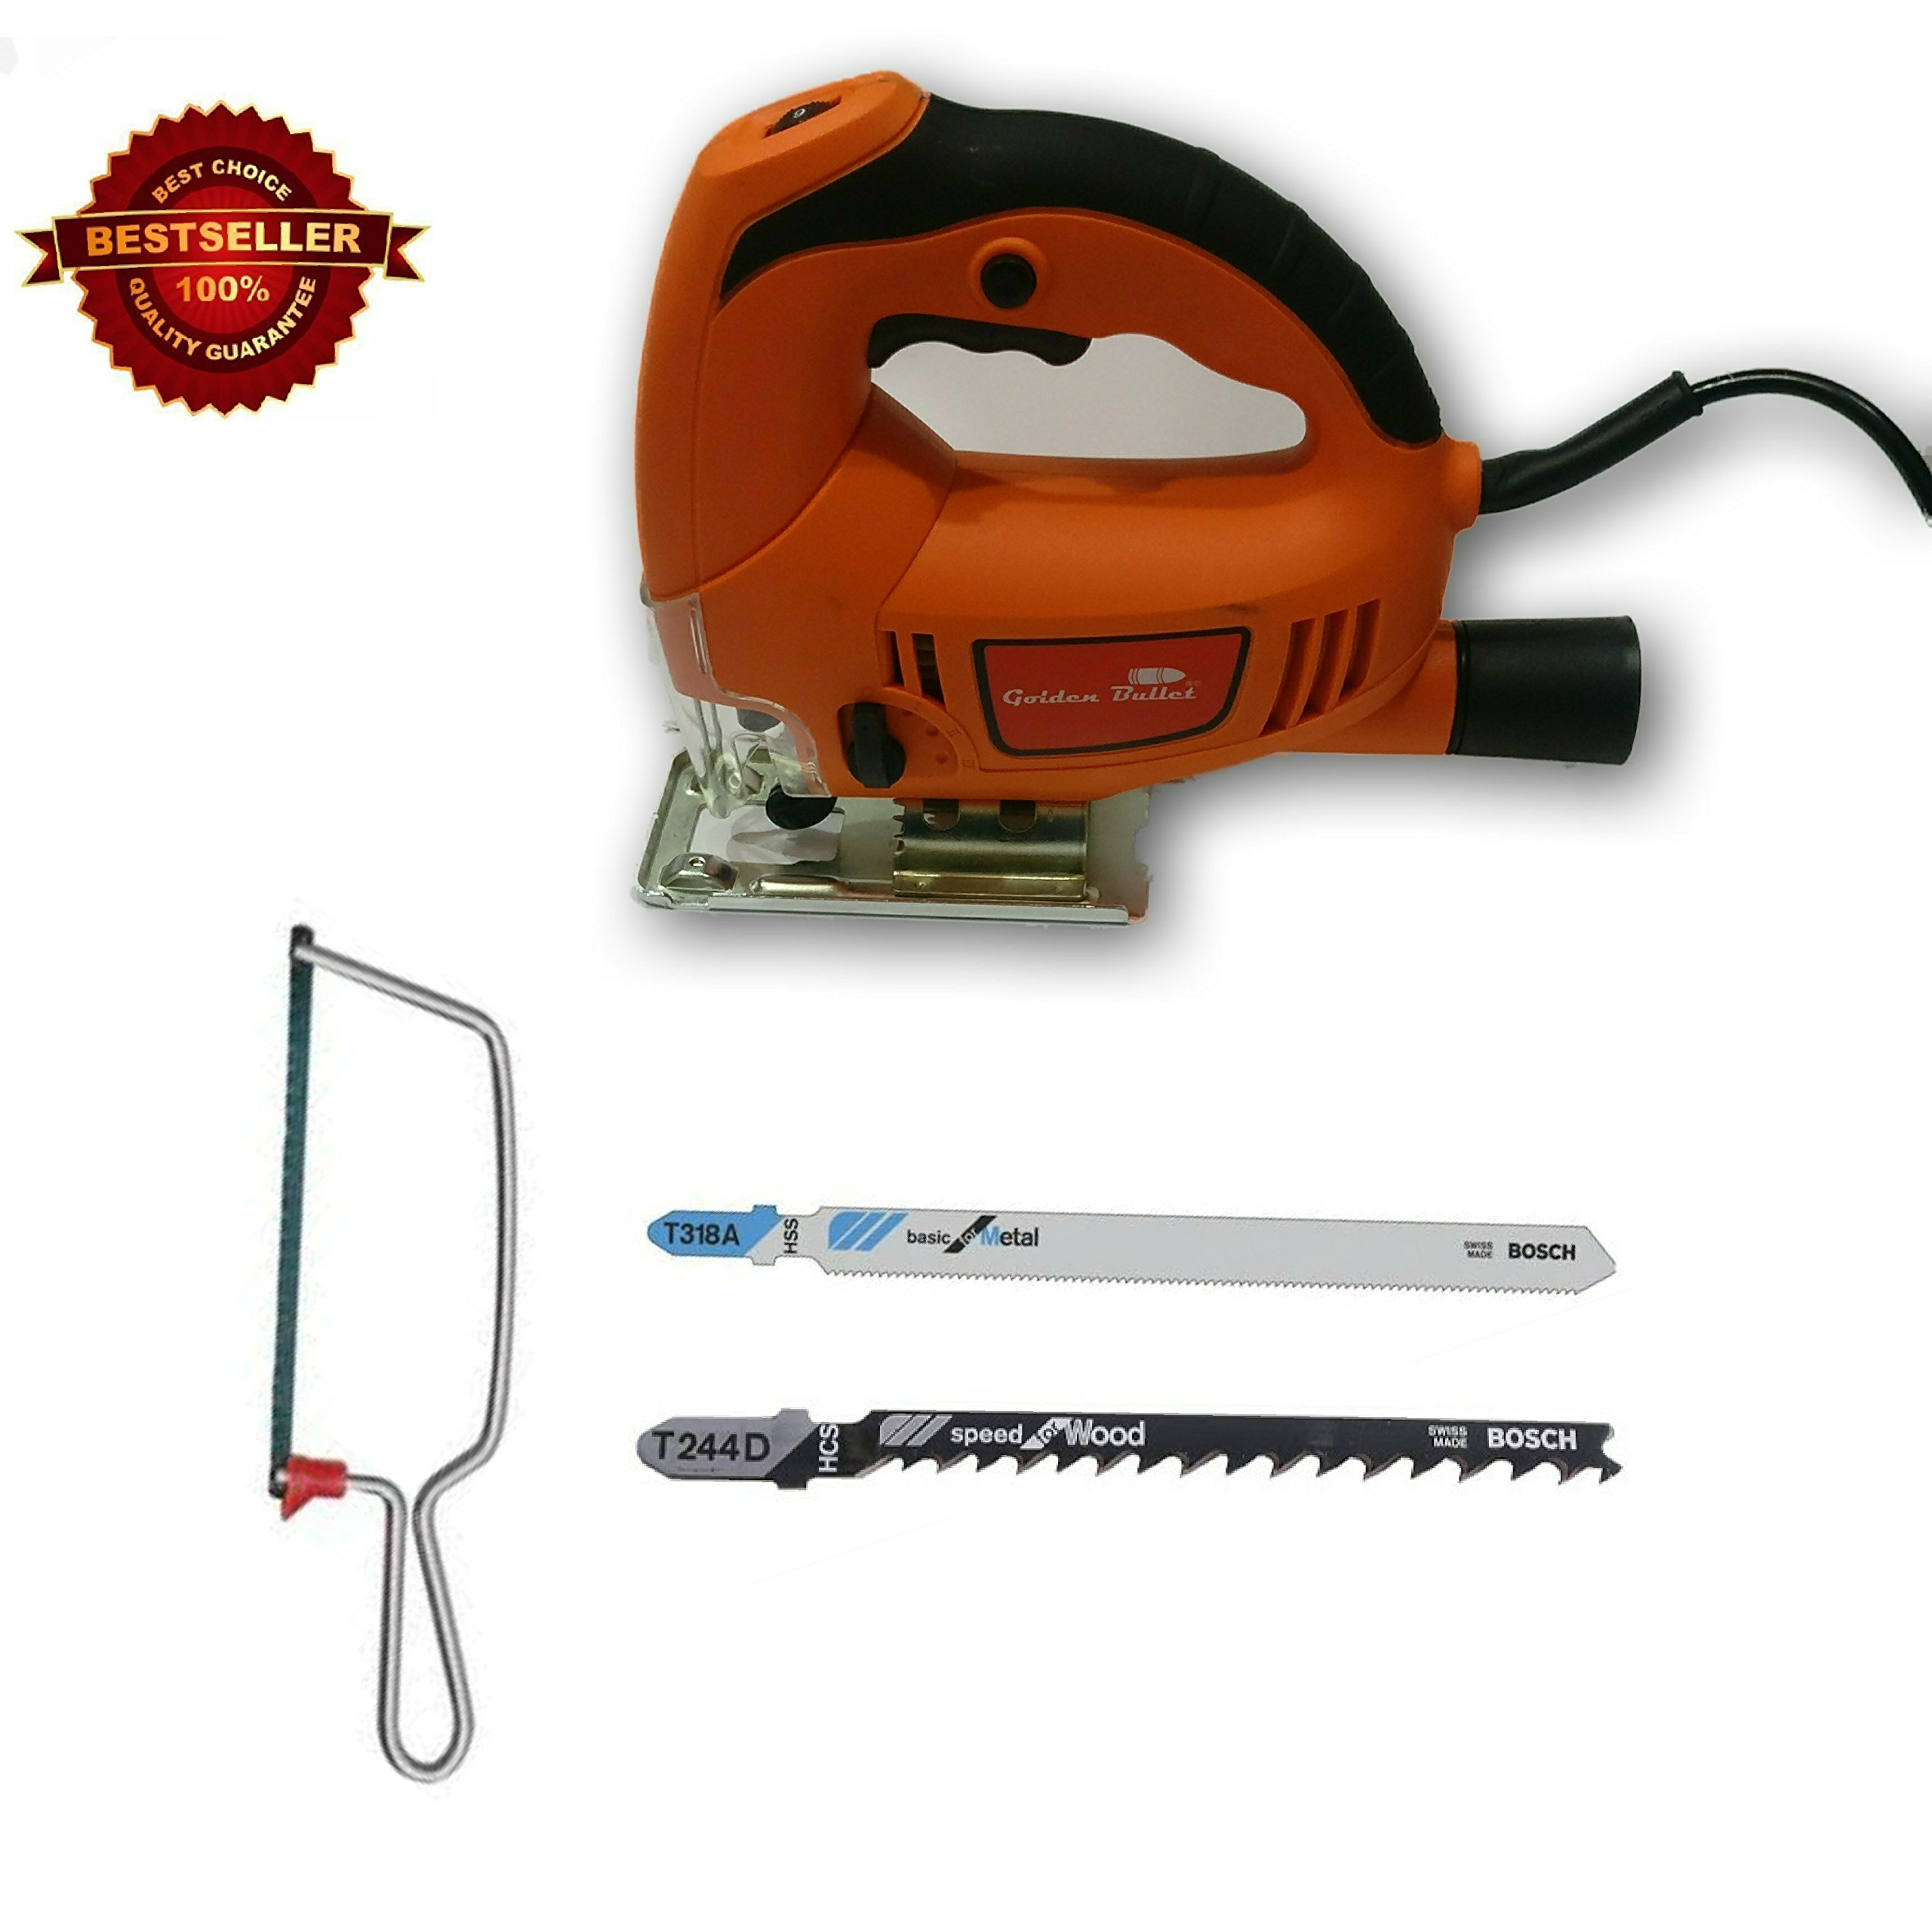 Tools Centre Jigsaw Machine (Industrial Quality) With Variable Speed & Free Blades For Metal